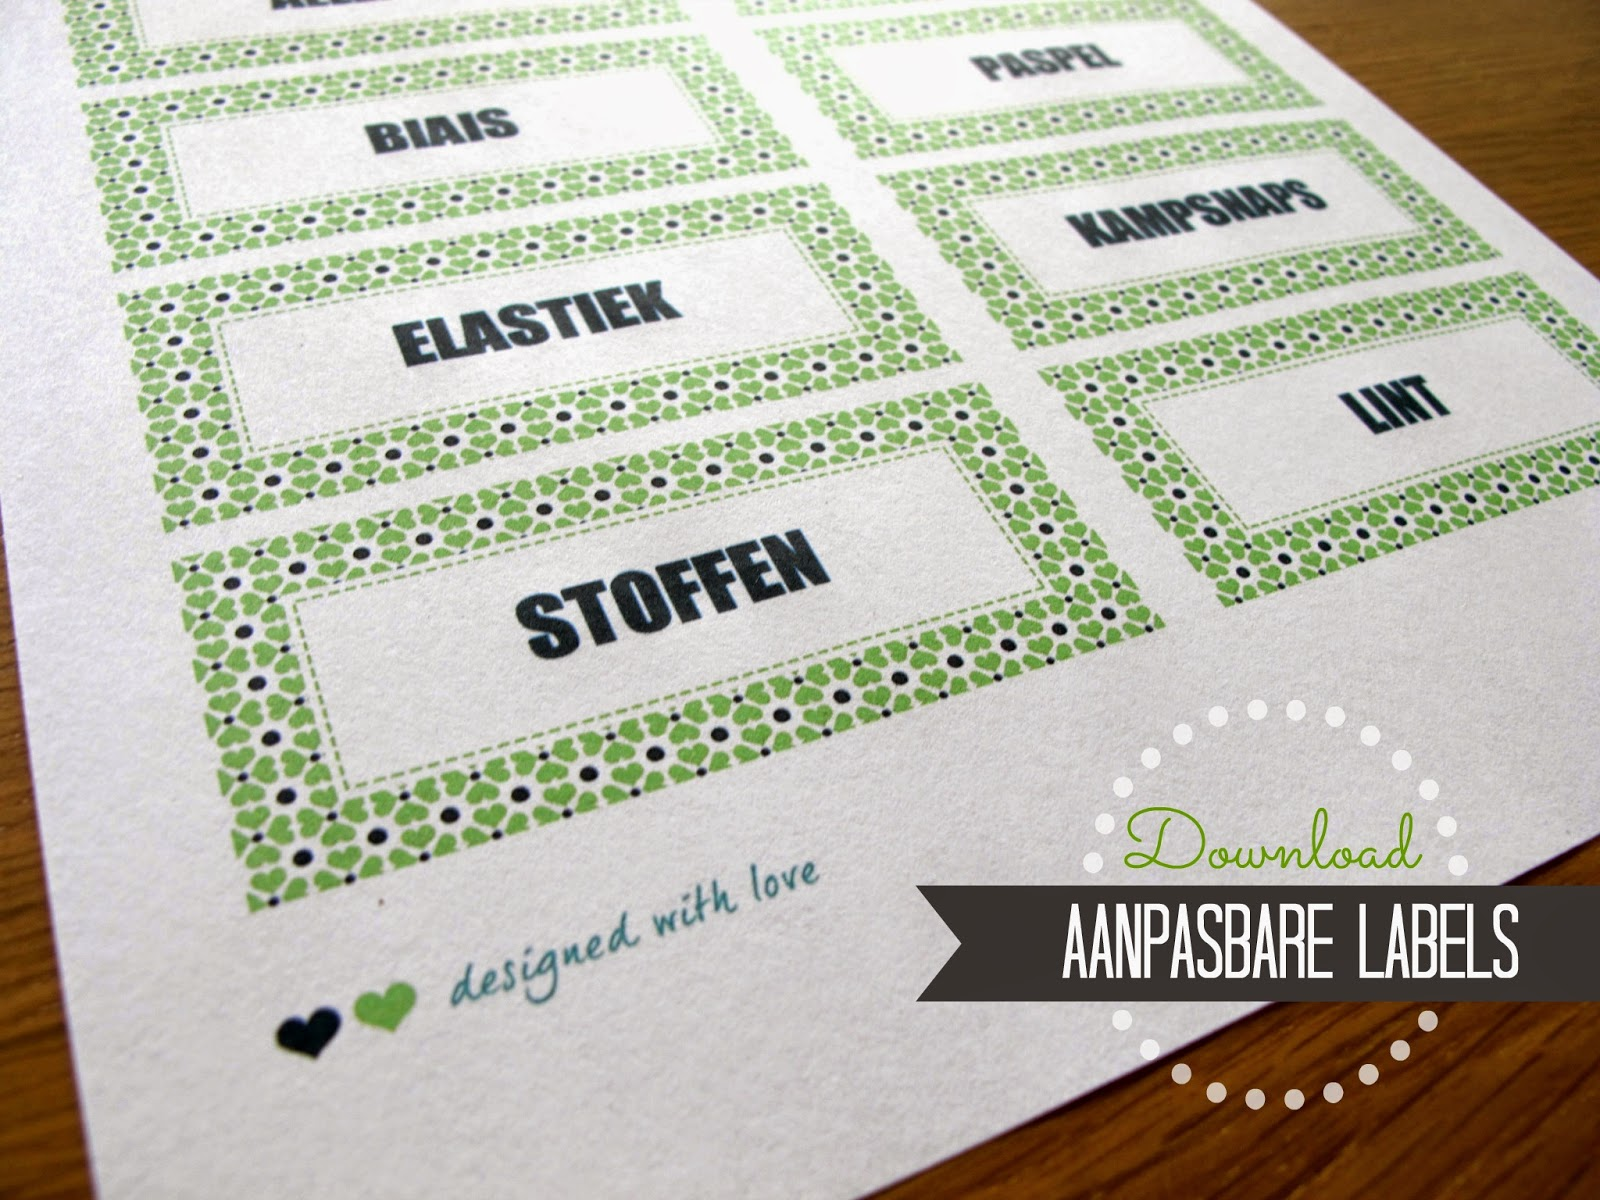 Aanpasbare labels, gratis download